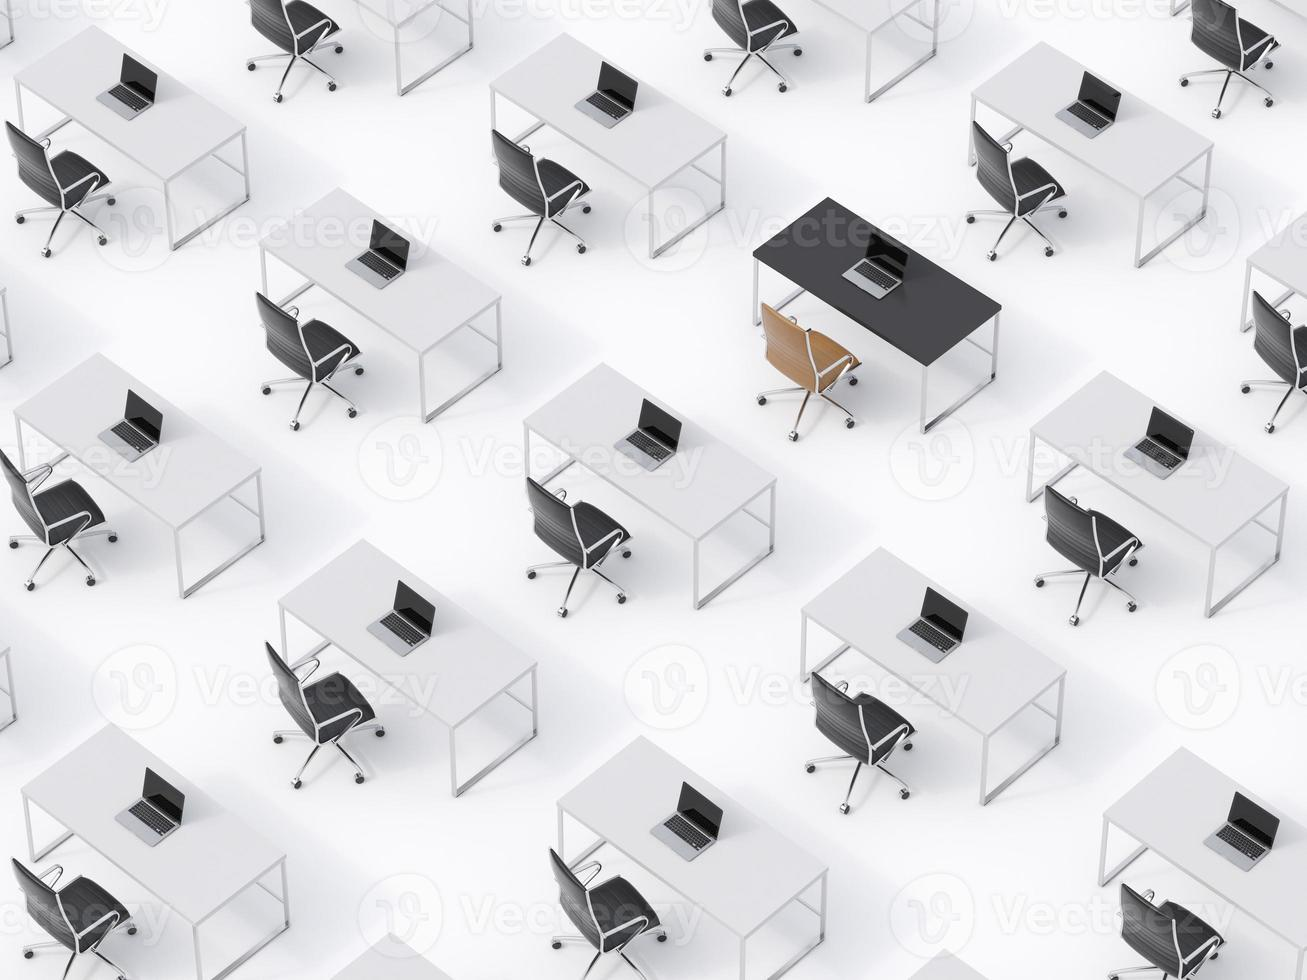 top view of the symmetric corporate workplaces on white floor photo